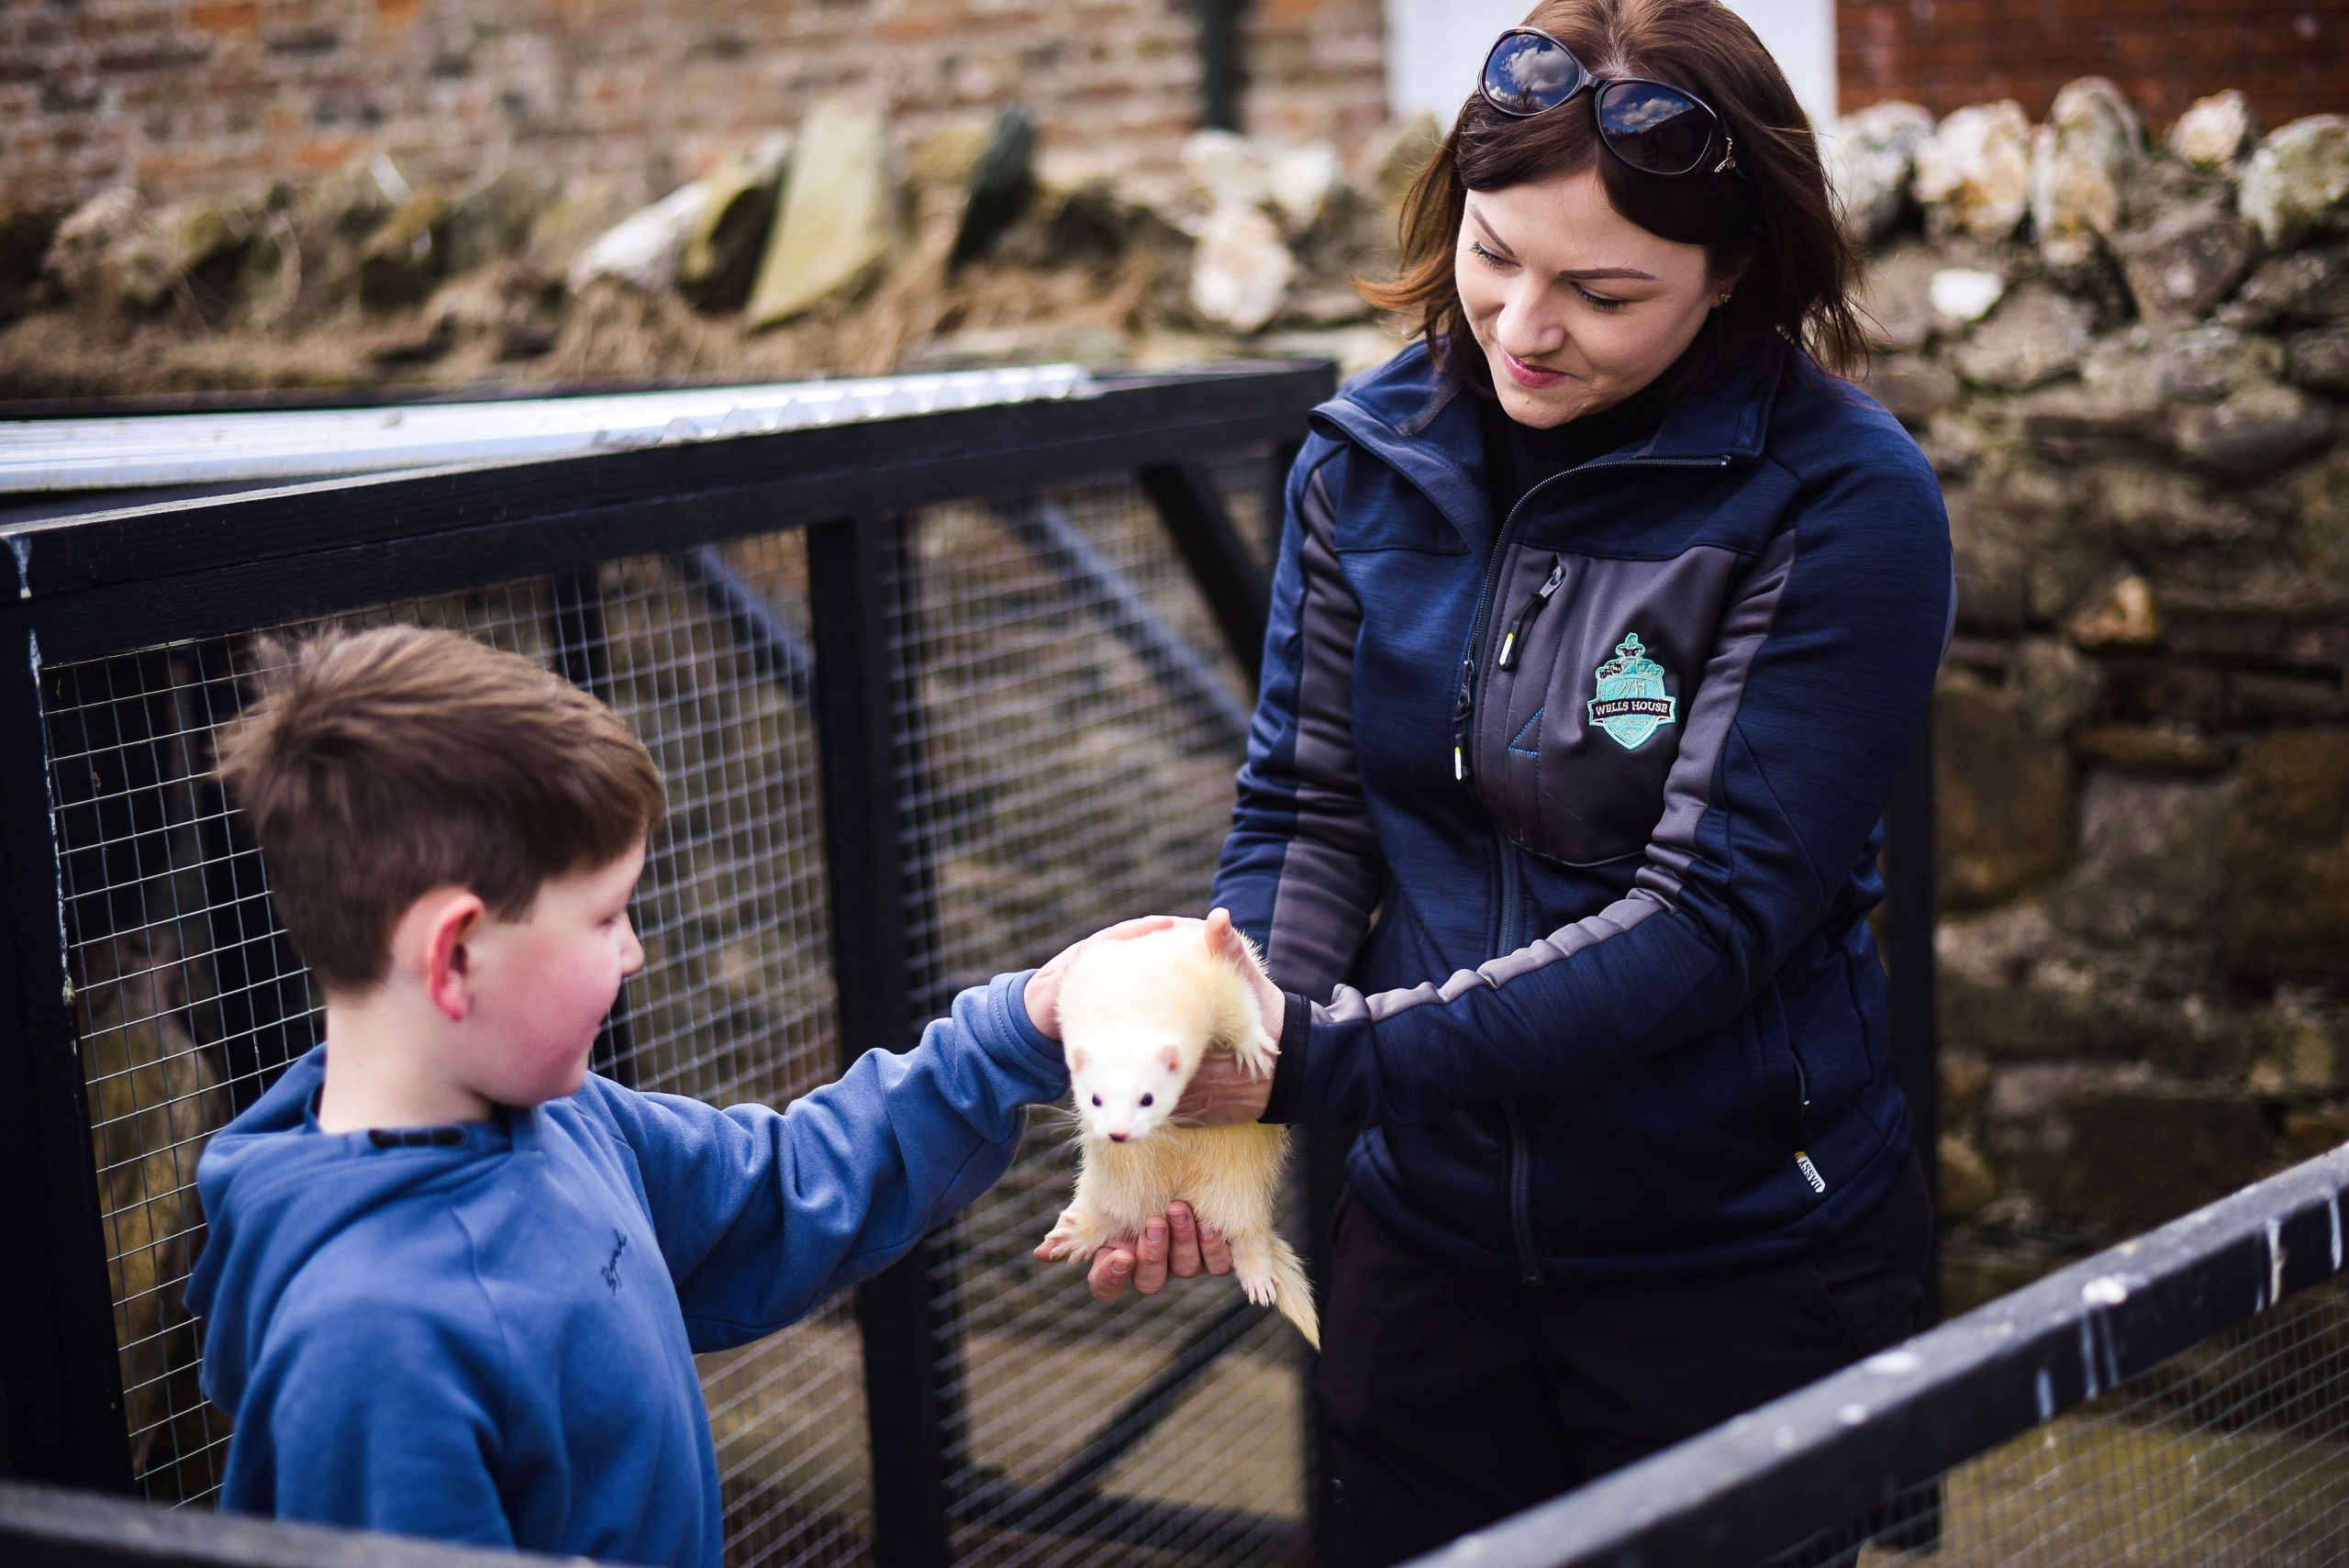 exoctic animal encounter wells house and gardens